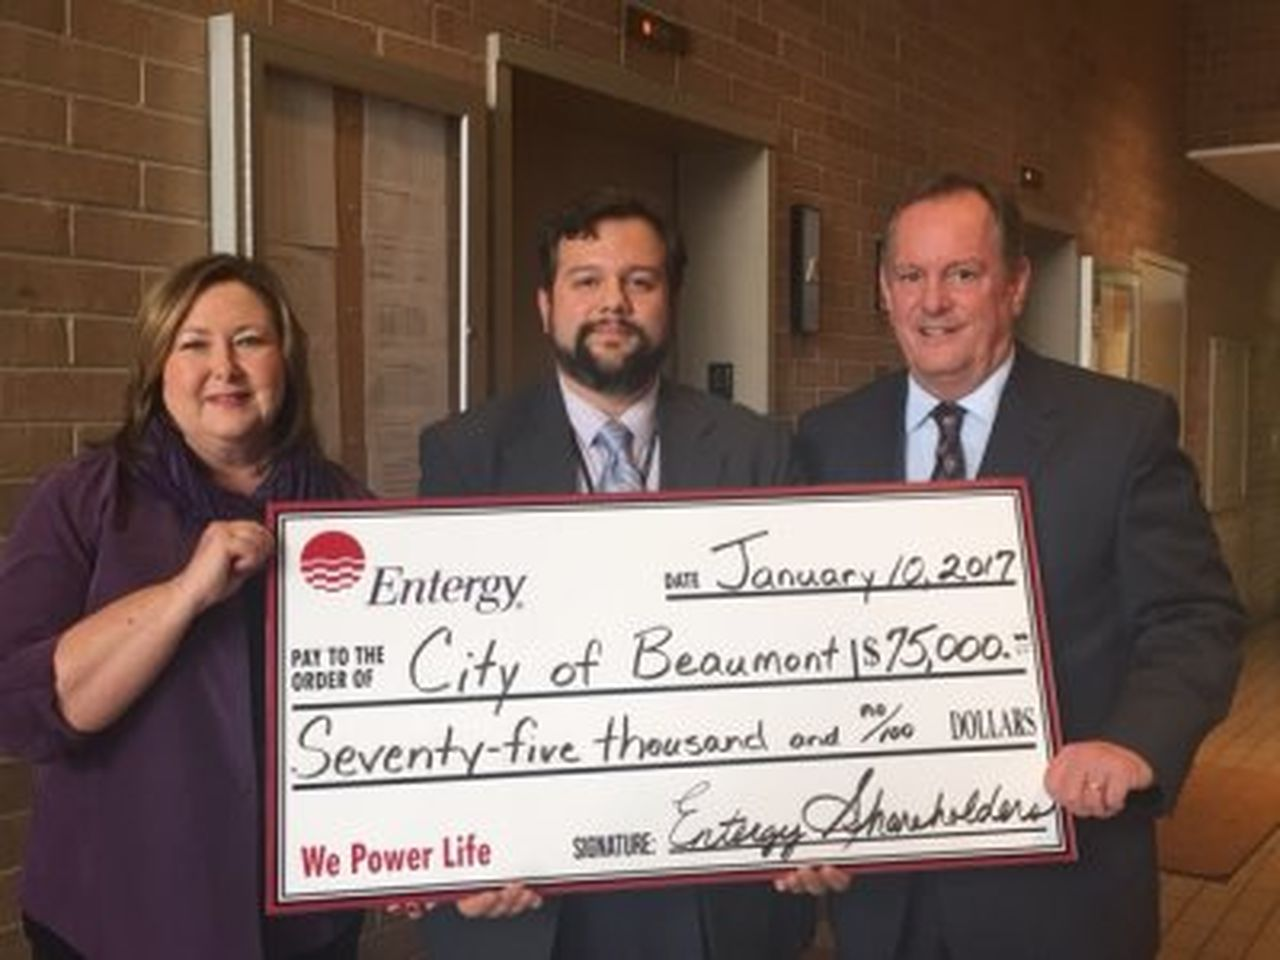 Pictured at the check presentation to the City of Beaumont are: Pamela Williams, Entergy Texas customer service representative; Carlos Aviles, City of Beaumont roadway designer and Vernon Pierce, Entergy Texas vice president of customer service.